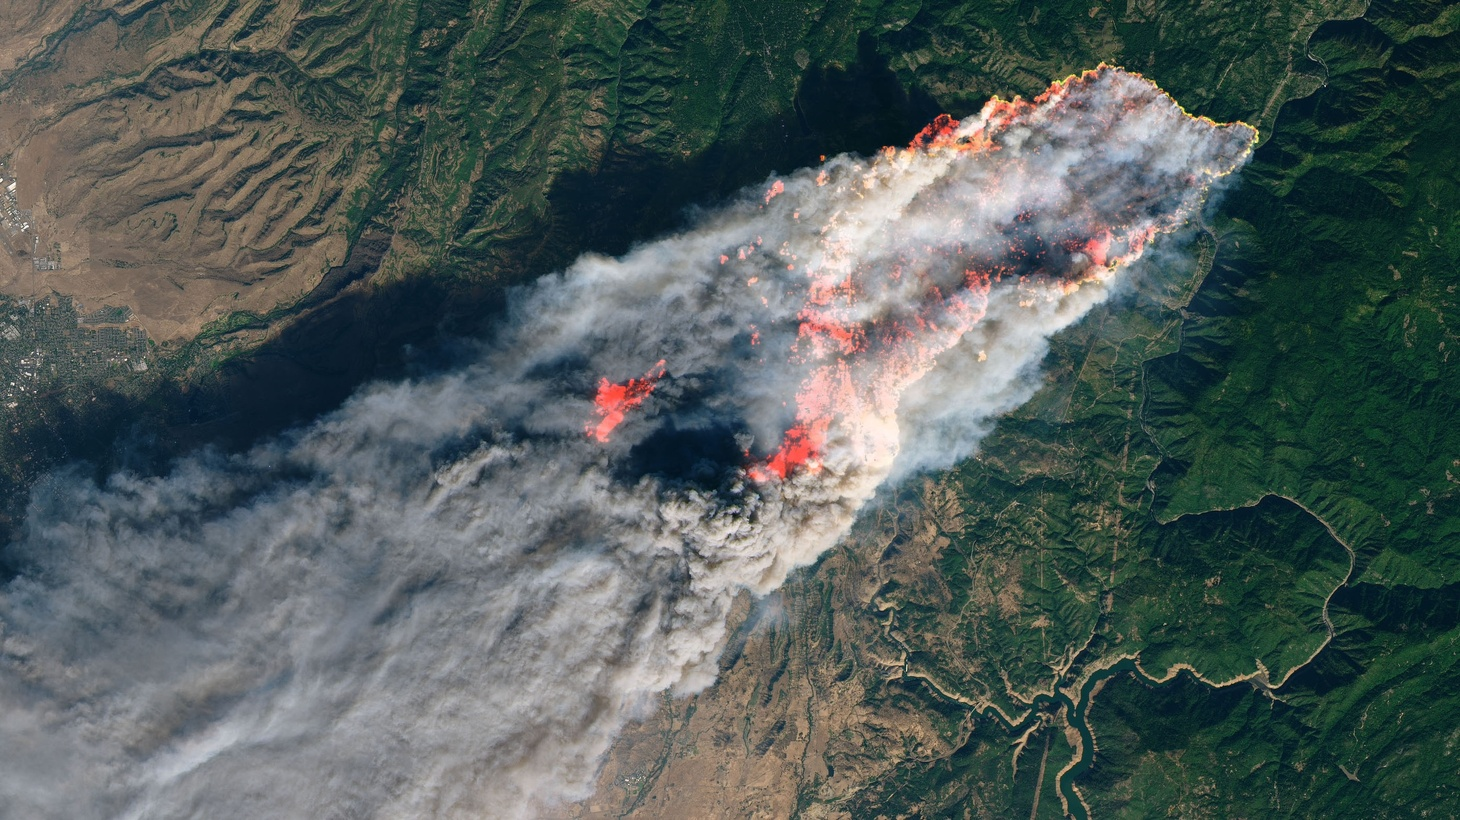 On the morning of November 8, 2018, the Camp Fire erupted 90 miles (140 kilometers) north of Sacramento, California. By evening, the fast-moving fire had charred around 18,000 acres and remained zero percent contained, according to news reports.